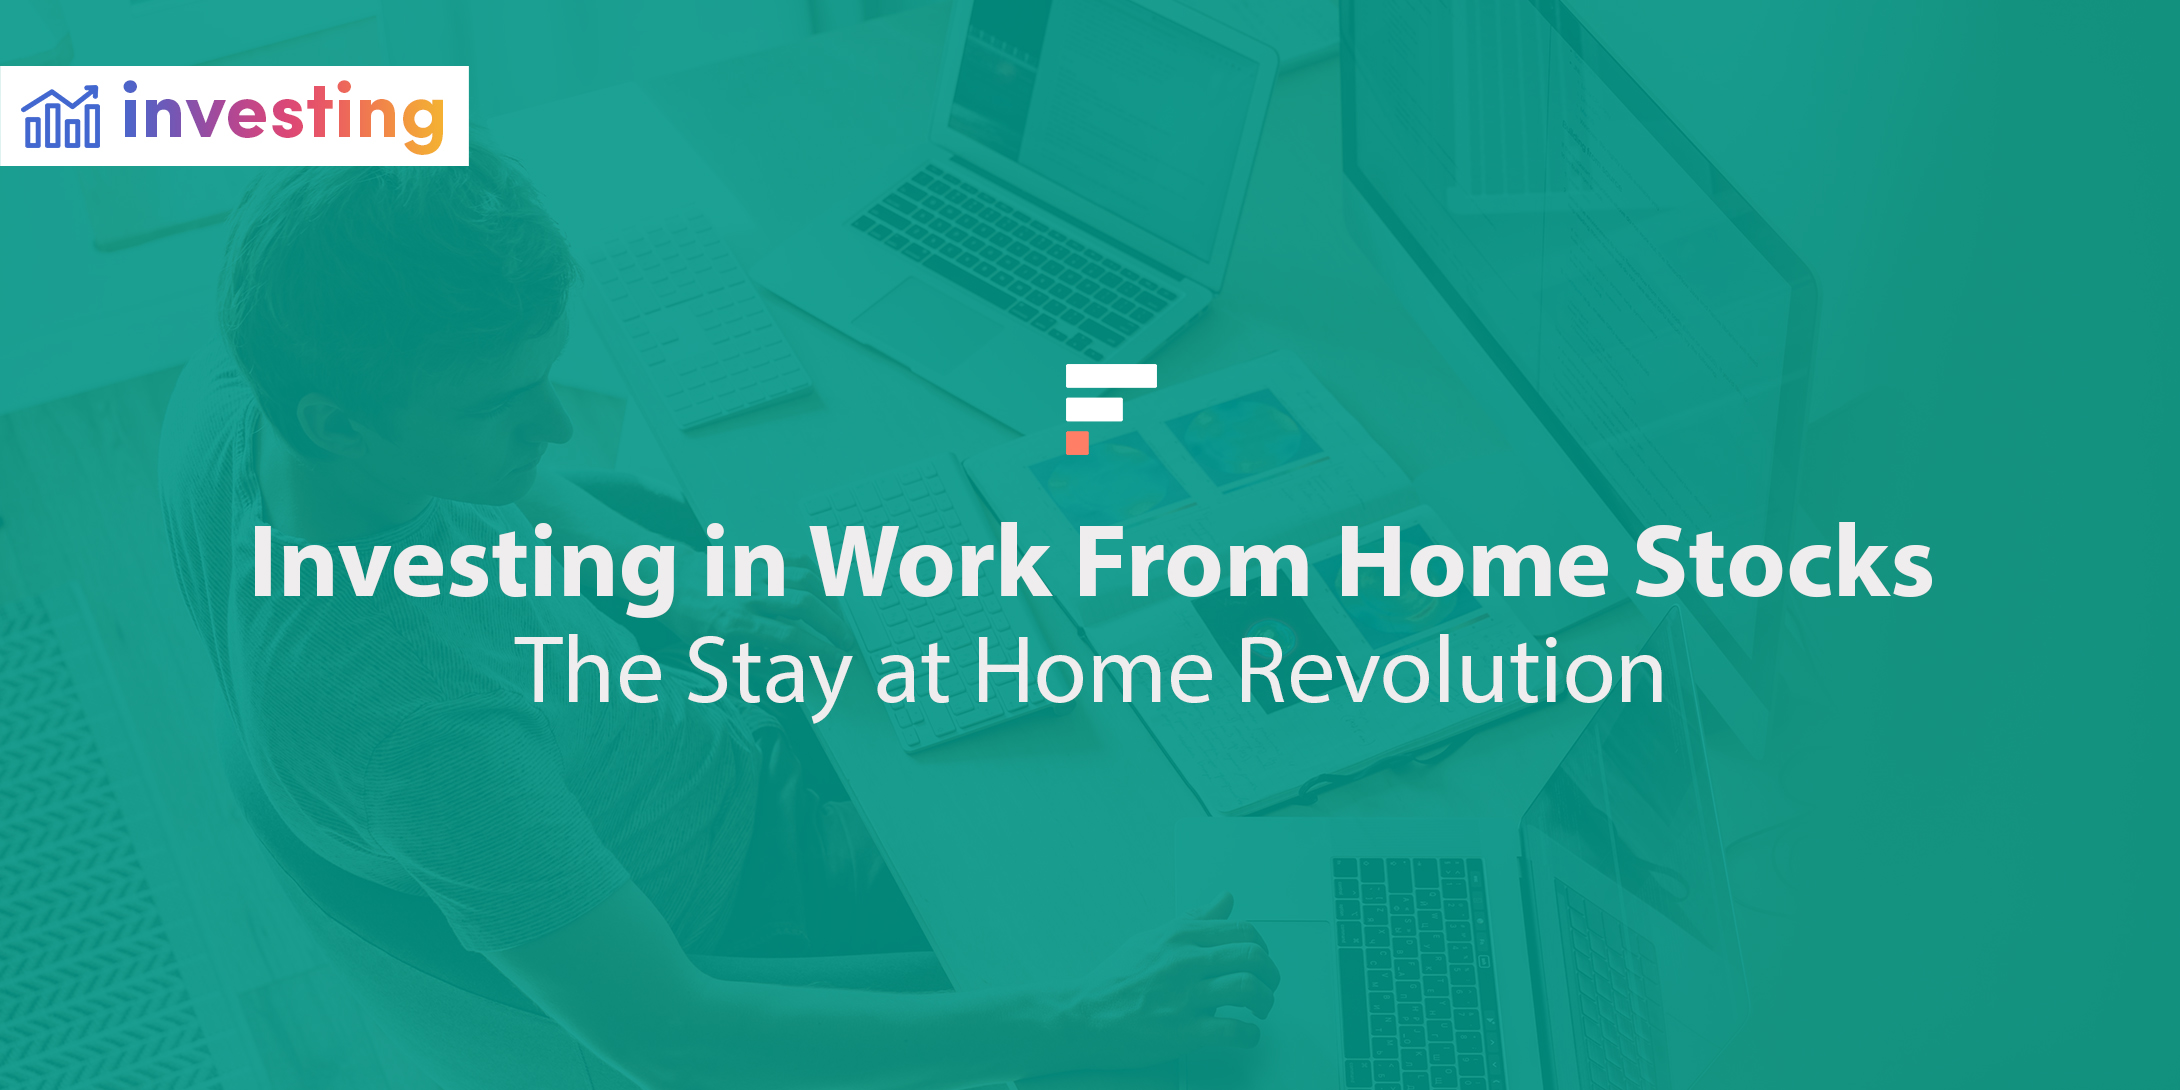 Investing in Work From Home Stocks: The Stay at Home Revolution